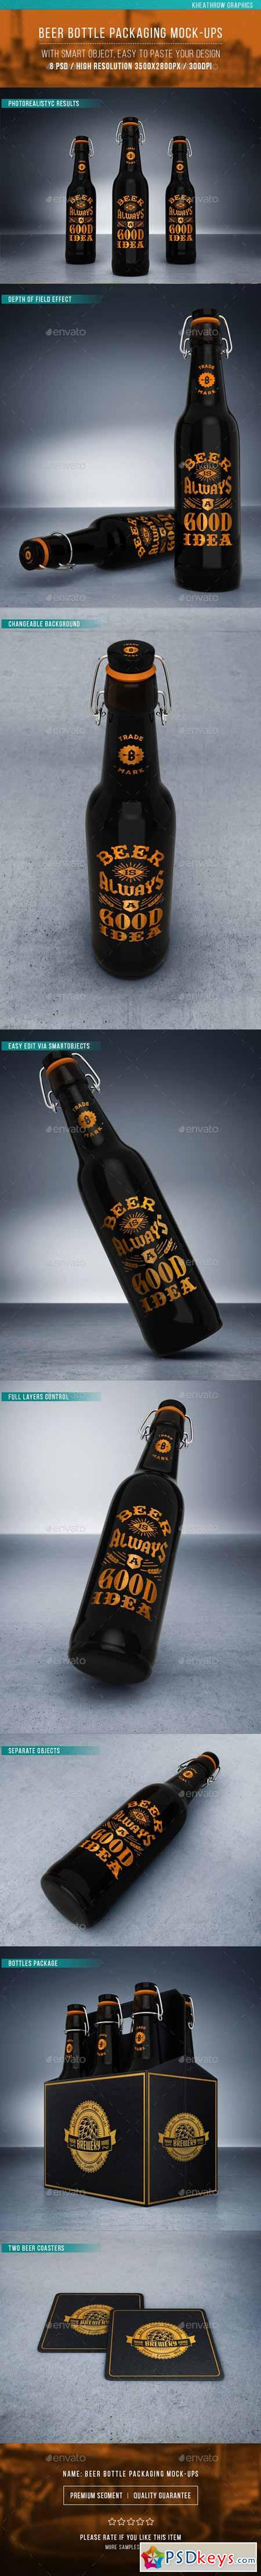 Beer Bottle Packaging Mock-ups 12331315